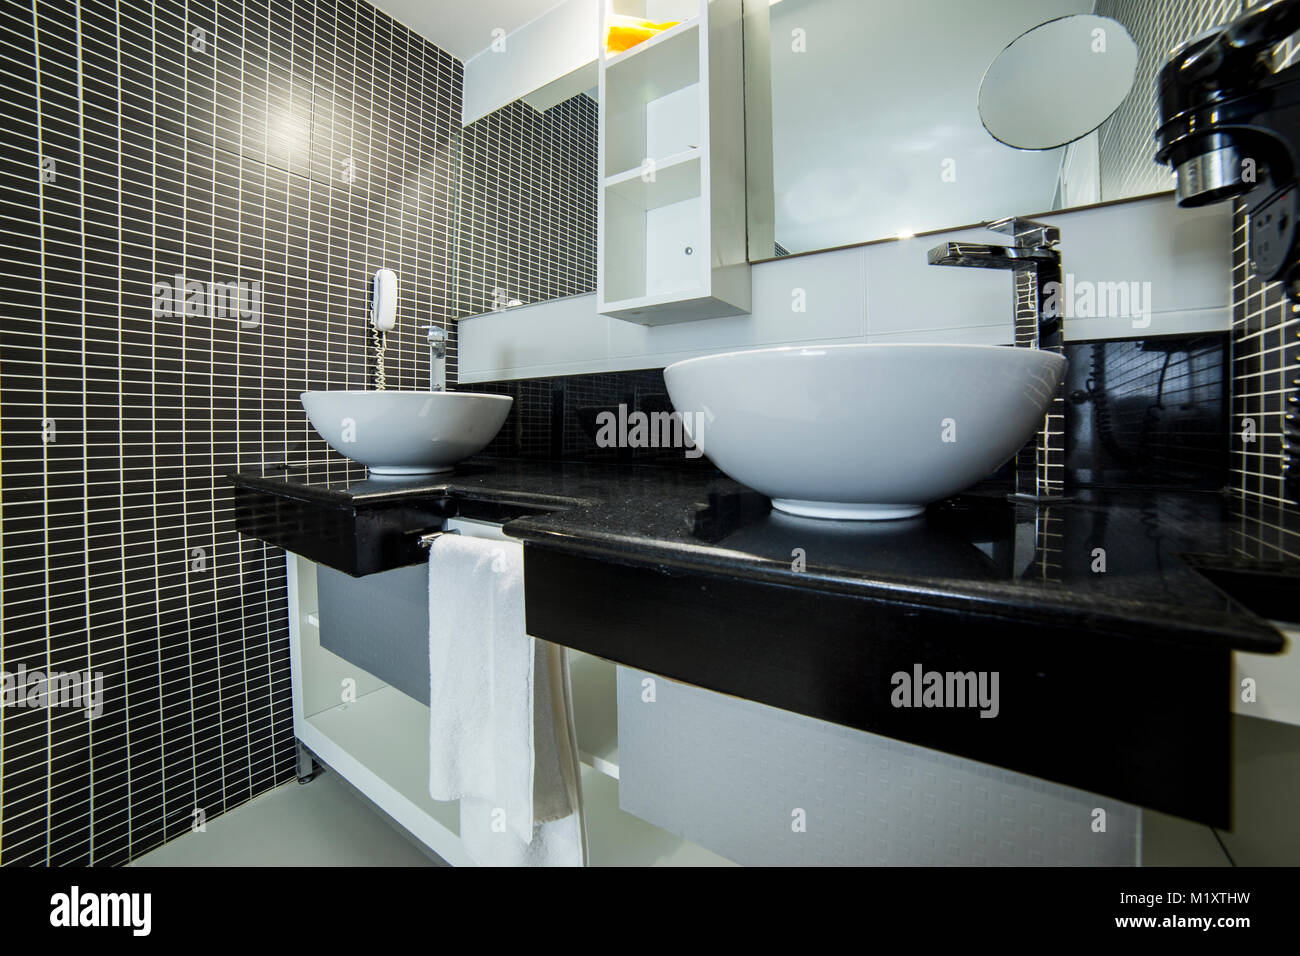 View of elegant bathroom with black tiles, wide angle lens image may ...